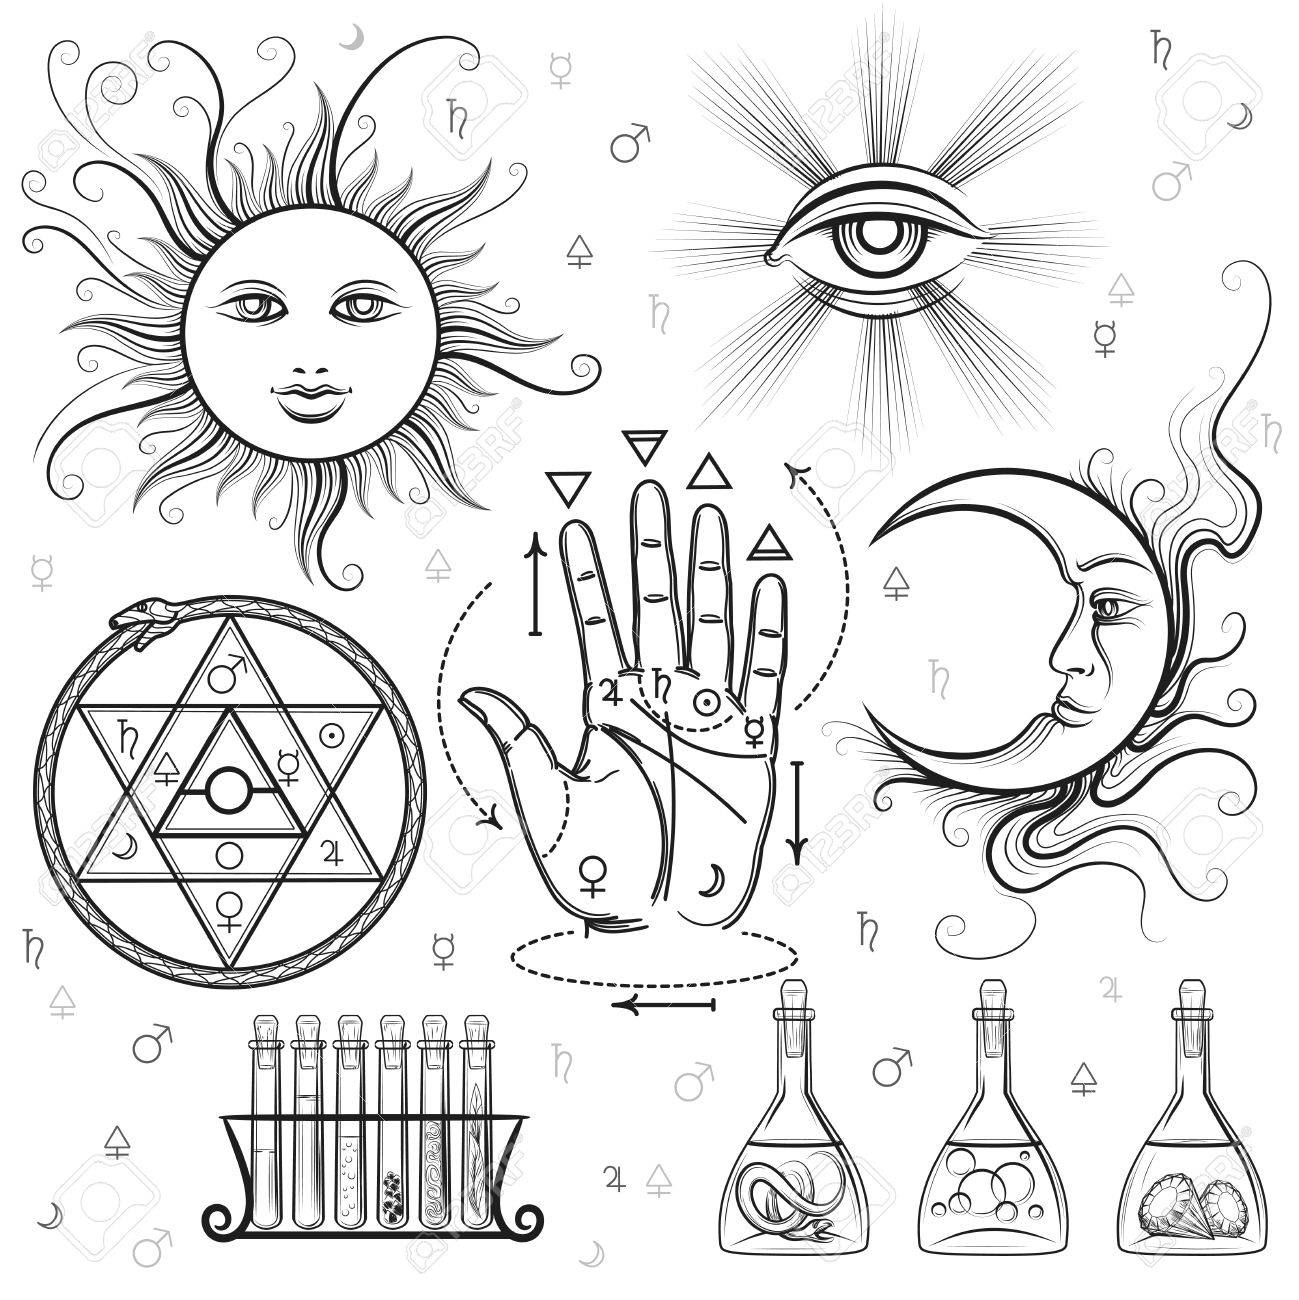 Esoteric signs vector symbols of philosophy and alchemy masonic vector symbols of philosophy and alchemy masonic and occult sciences stock vector buycottarizona Images